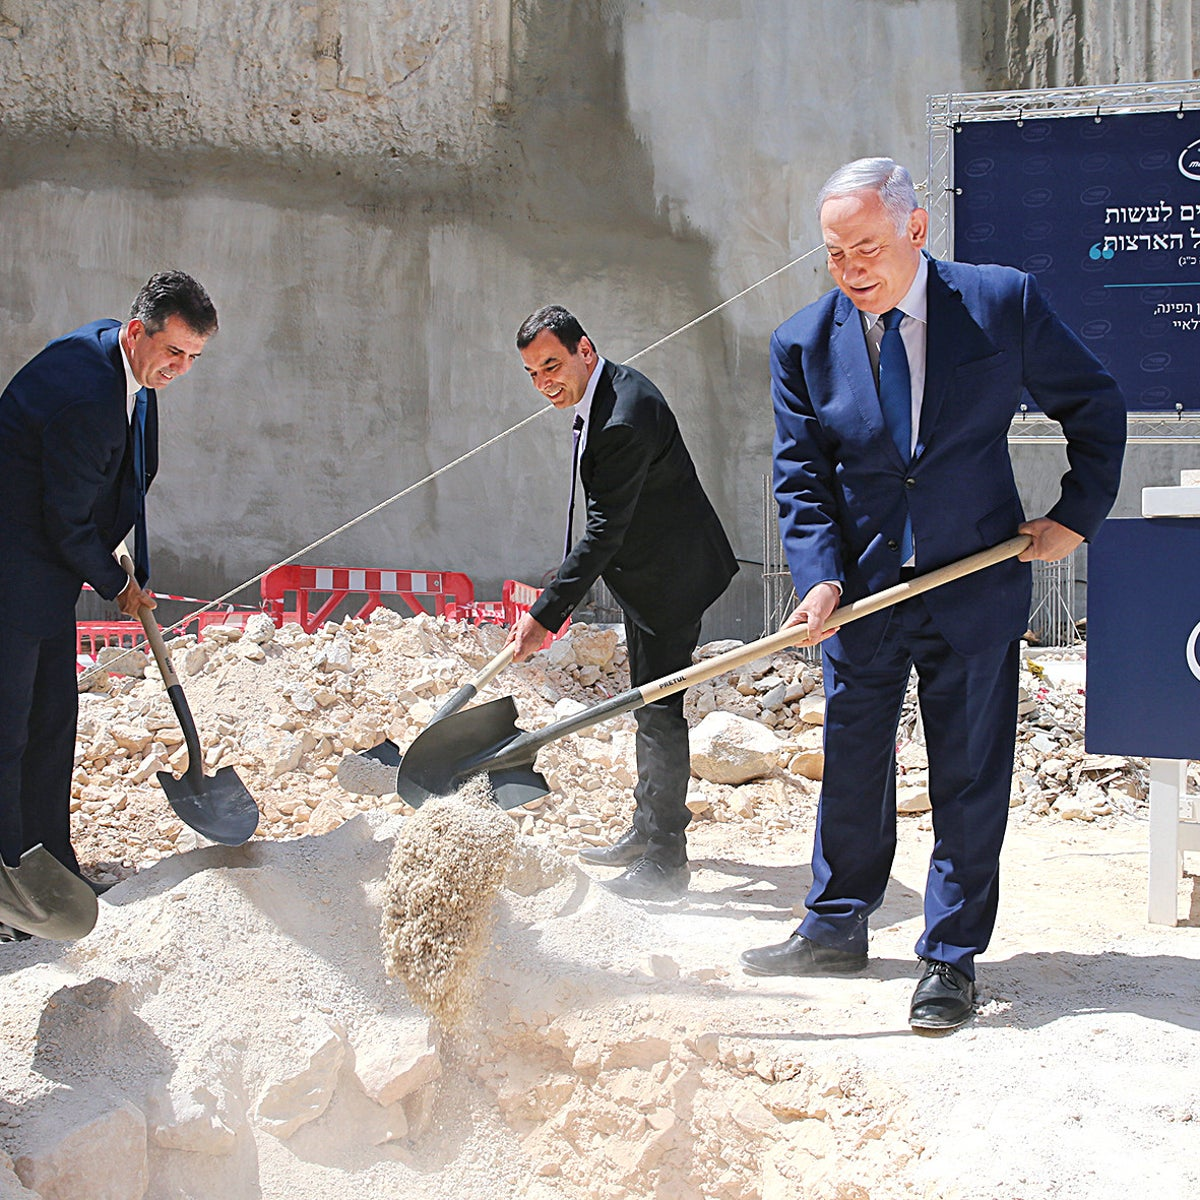 Prime Minister Netanyahu laying the cornerstone for Mobileye's development center in Jerusalem, 2019.